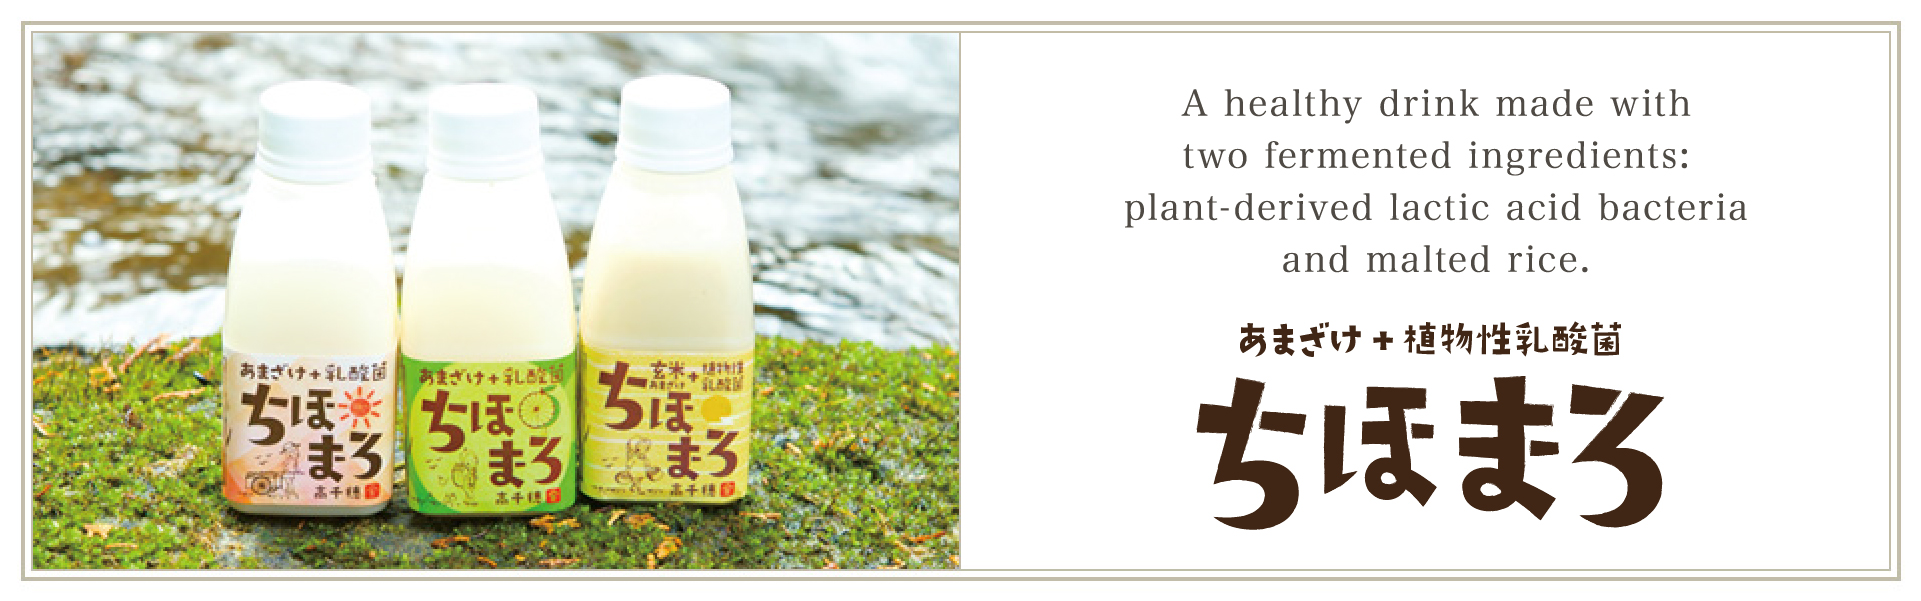 A healthy drink made with two fermented ingredients plant-derived lactic acid bacteria and malted rice. Chihomaro